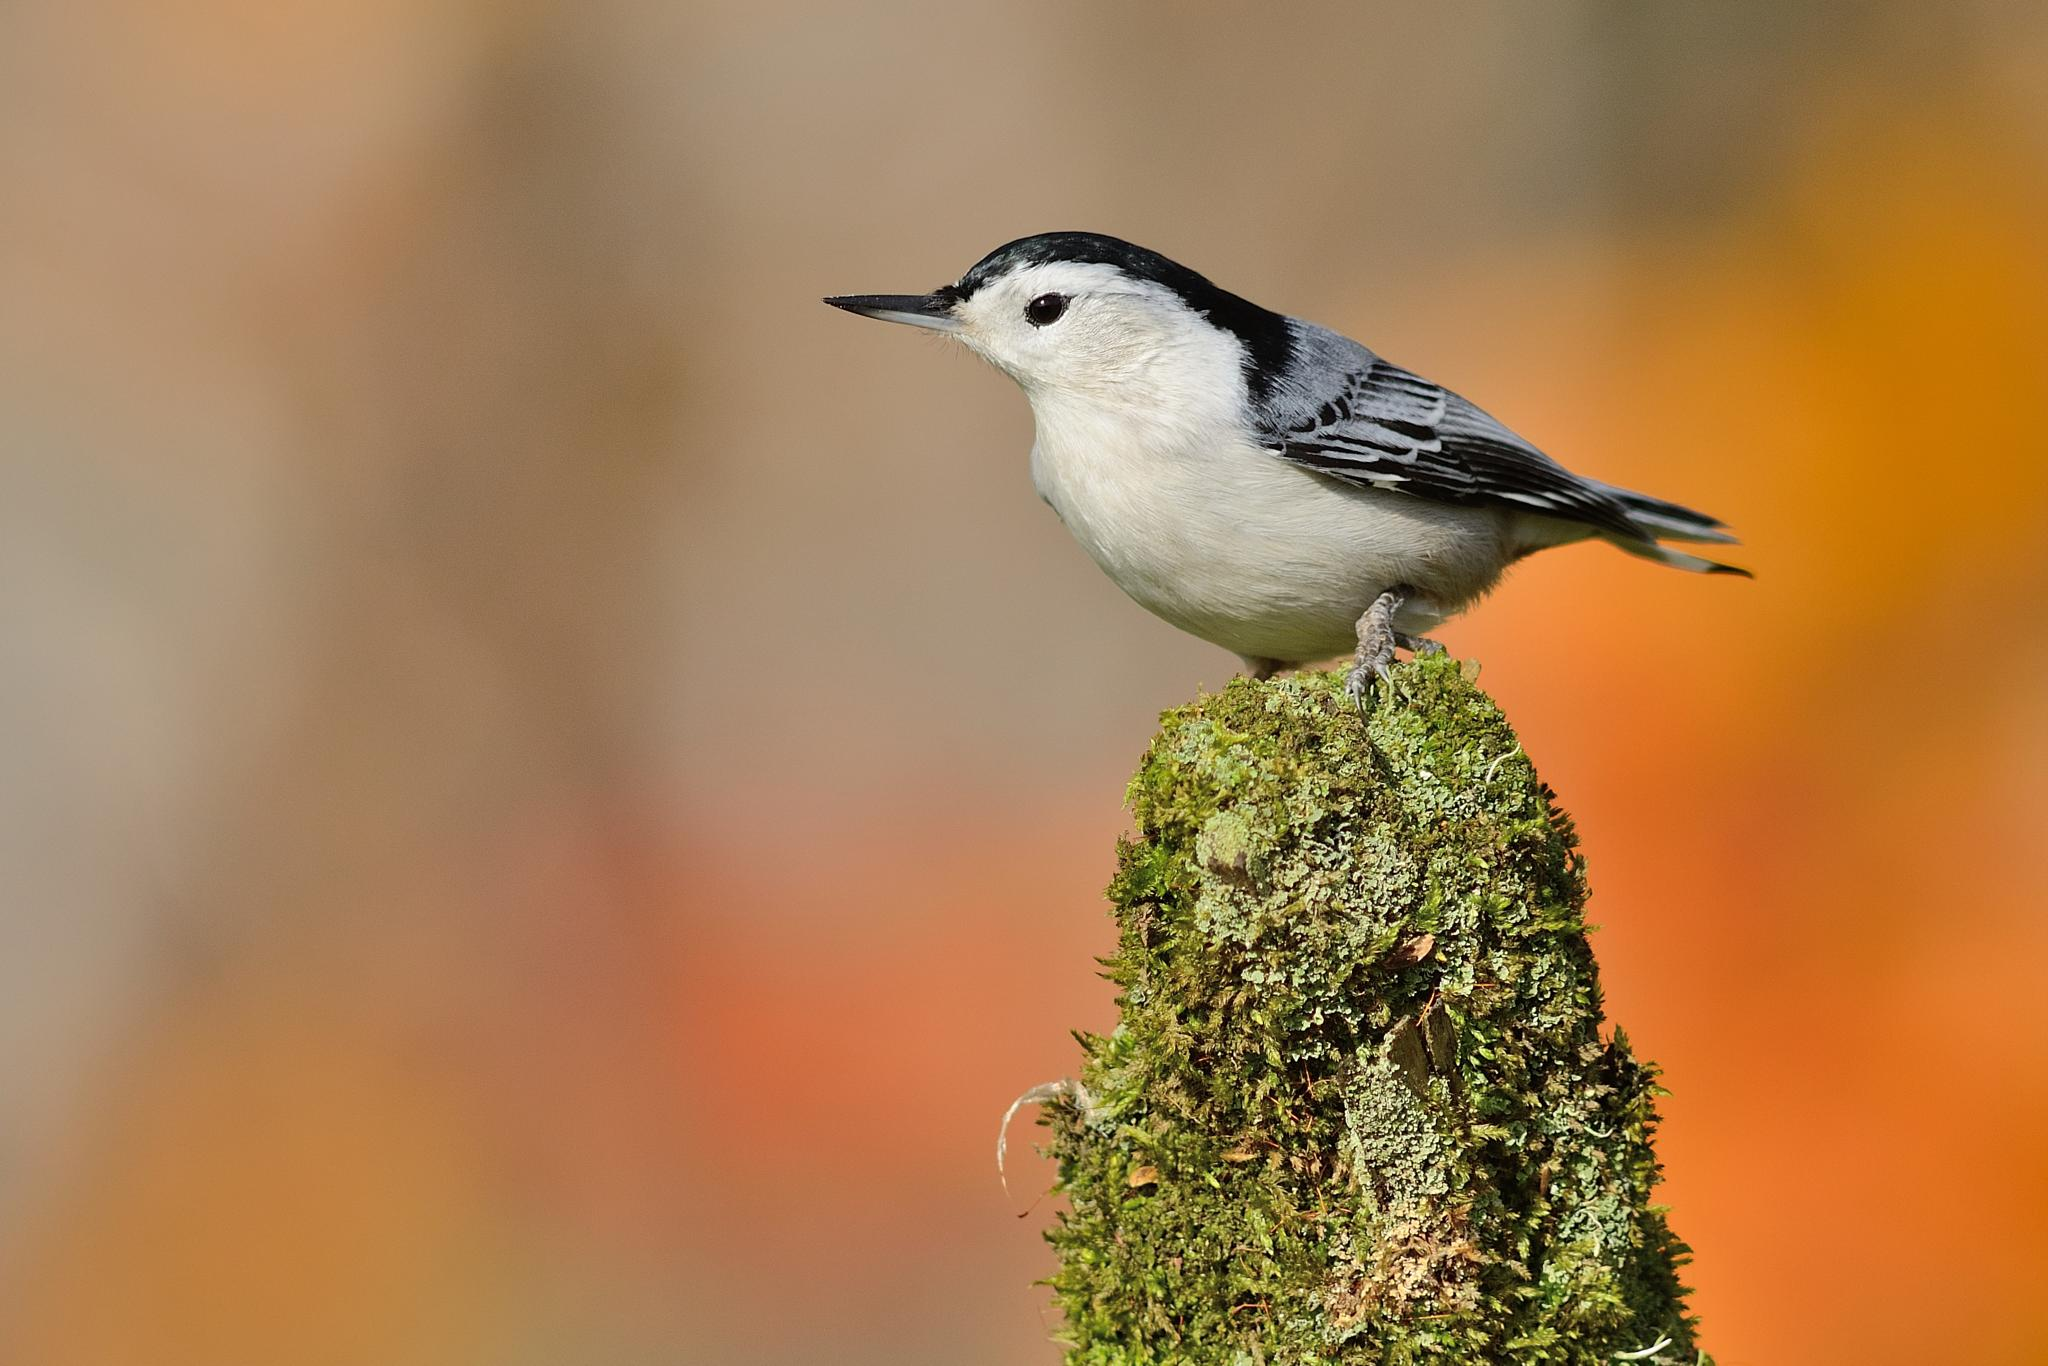 White-breasted nuthatch by dominic.roy.395